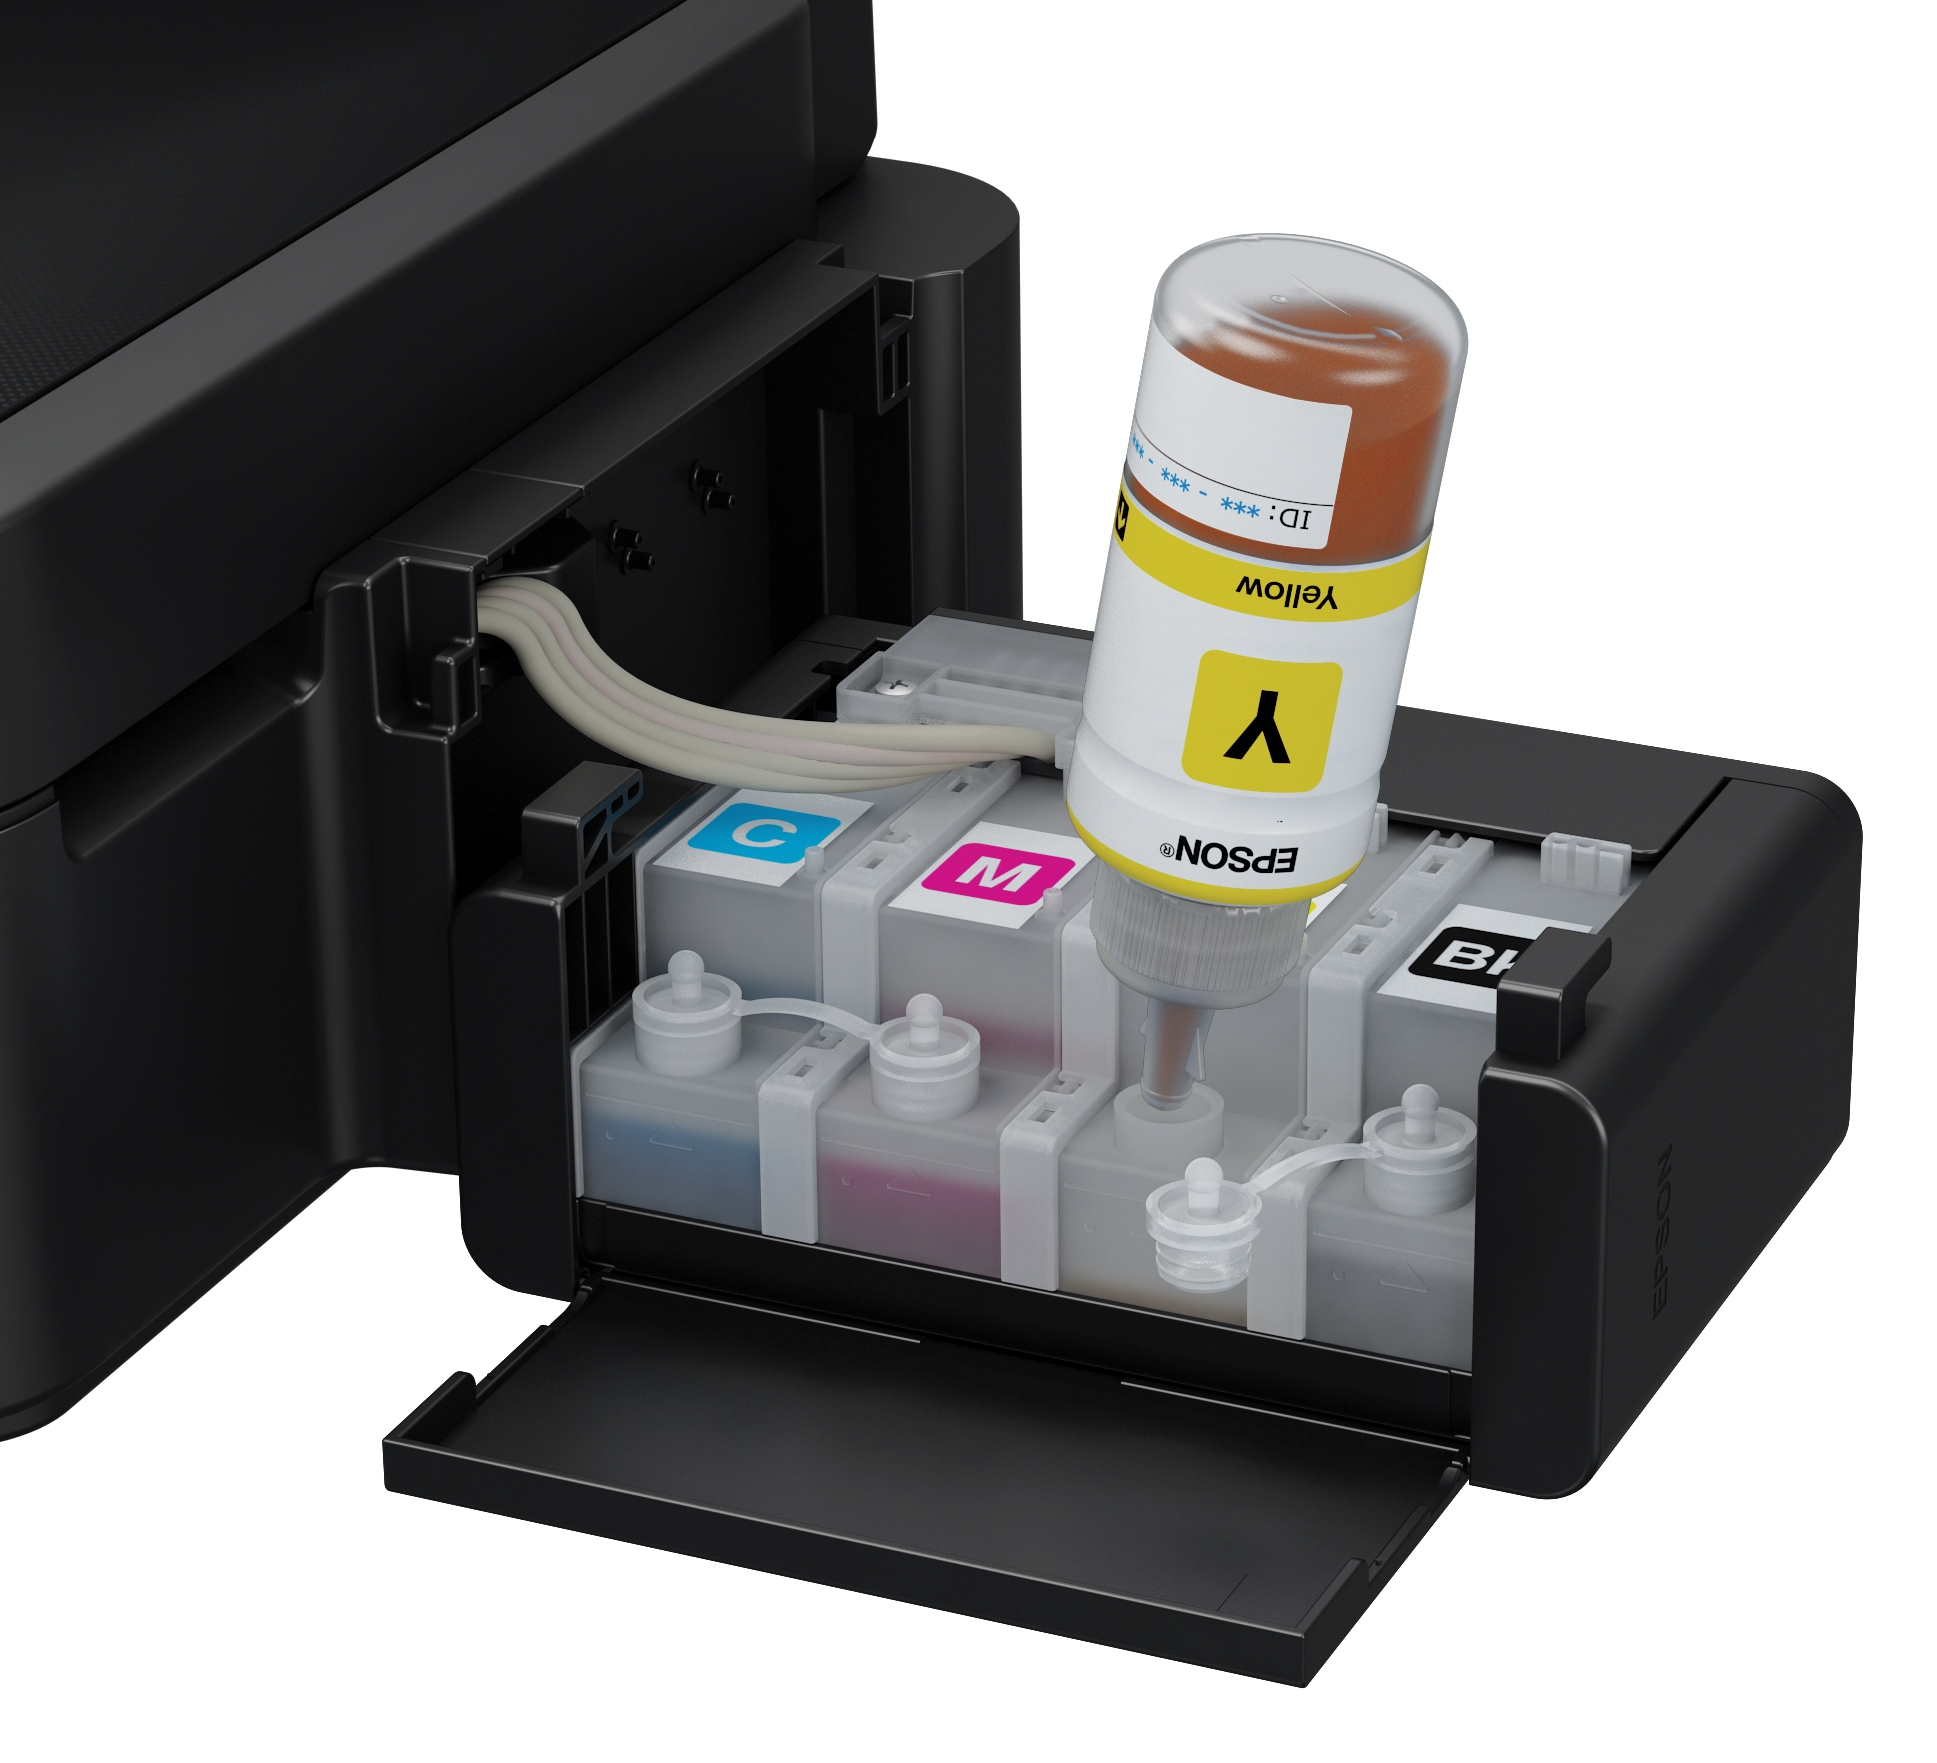 Ink Tank - The New Epson L-Series: Faster, Easier to Use, More Reliable, at a More Affordable Price!